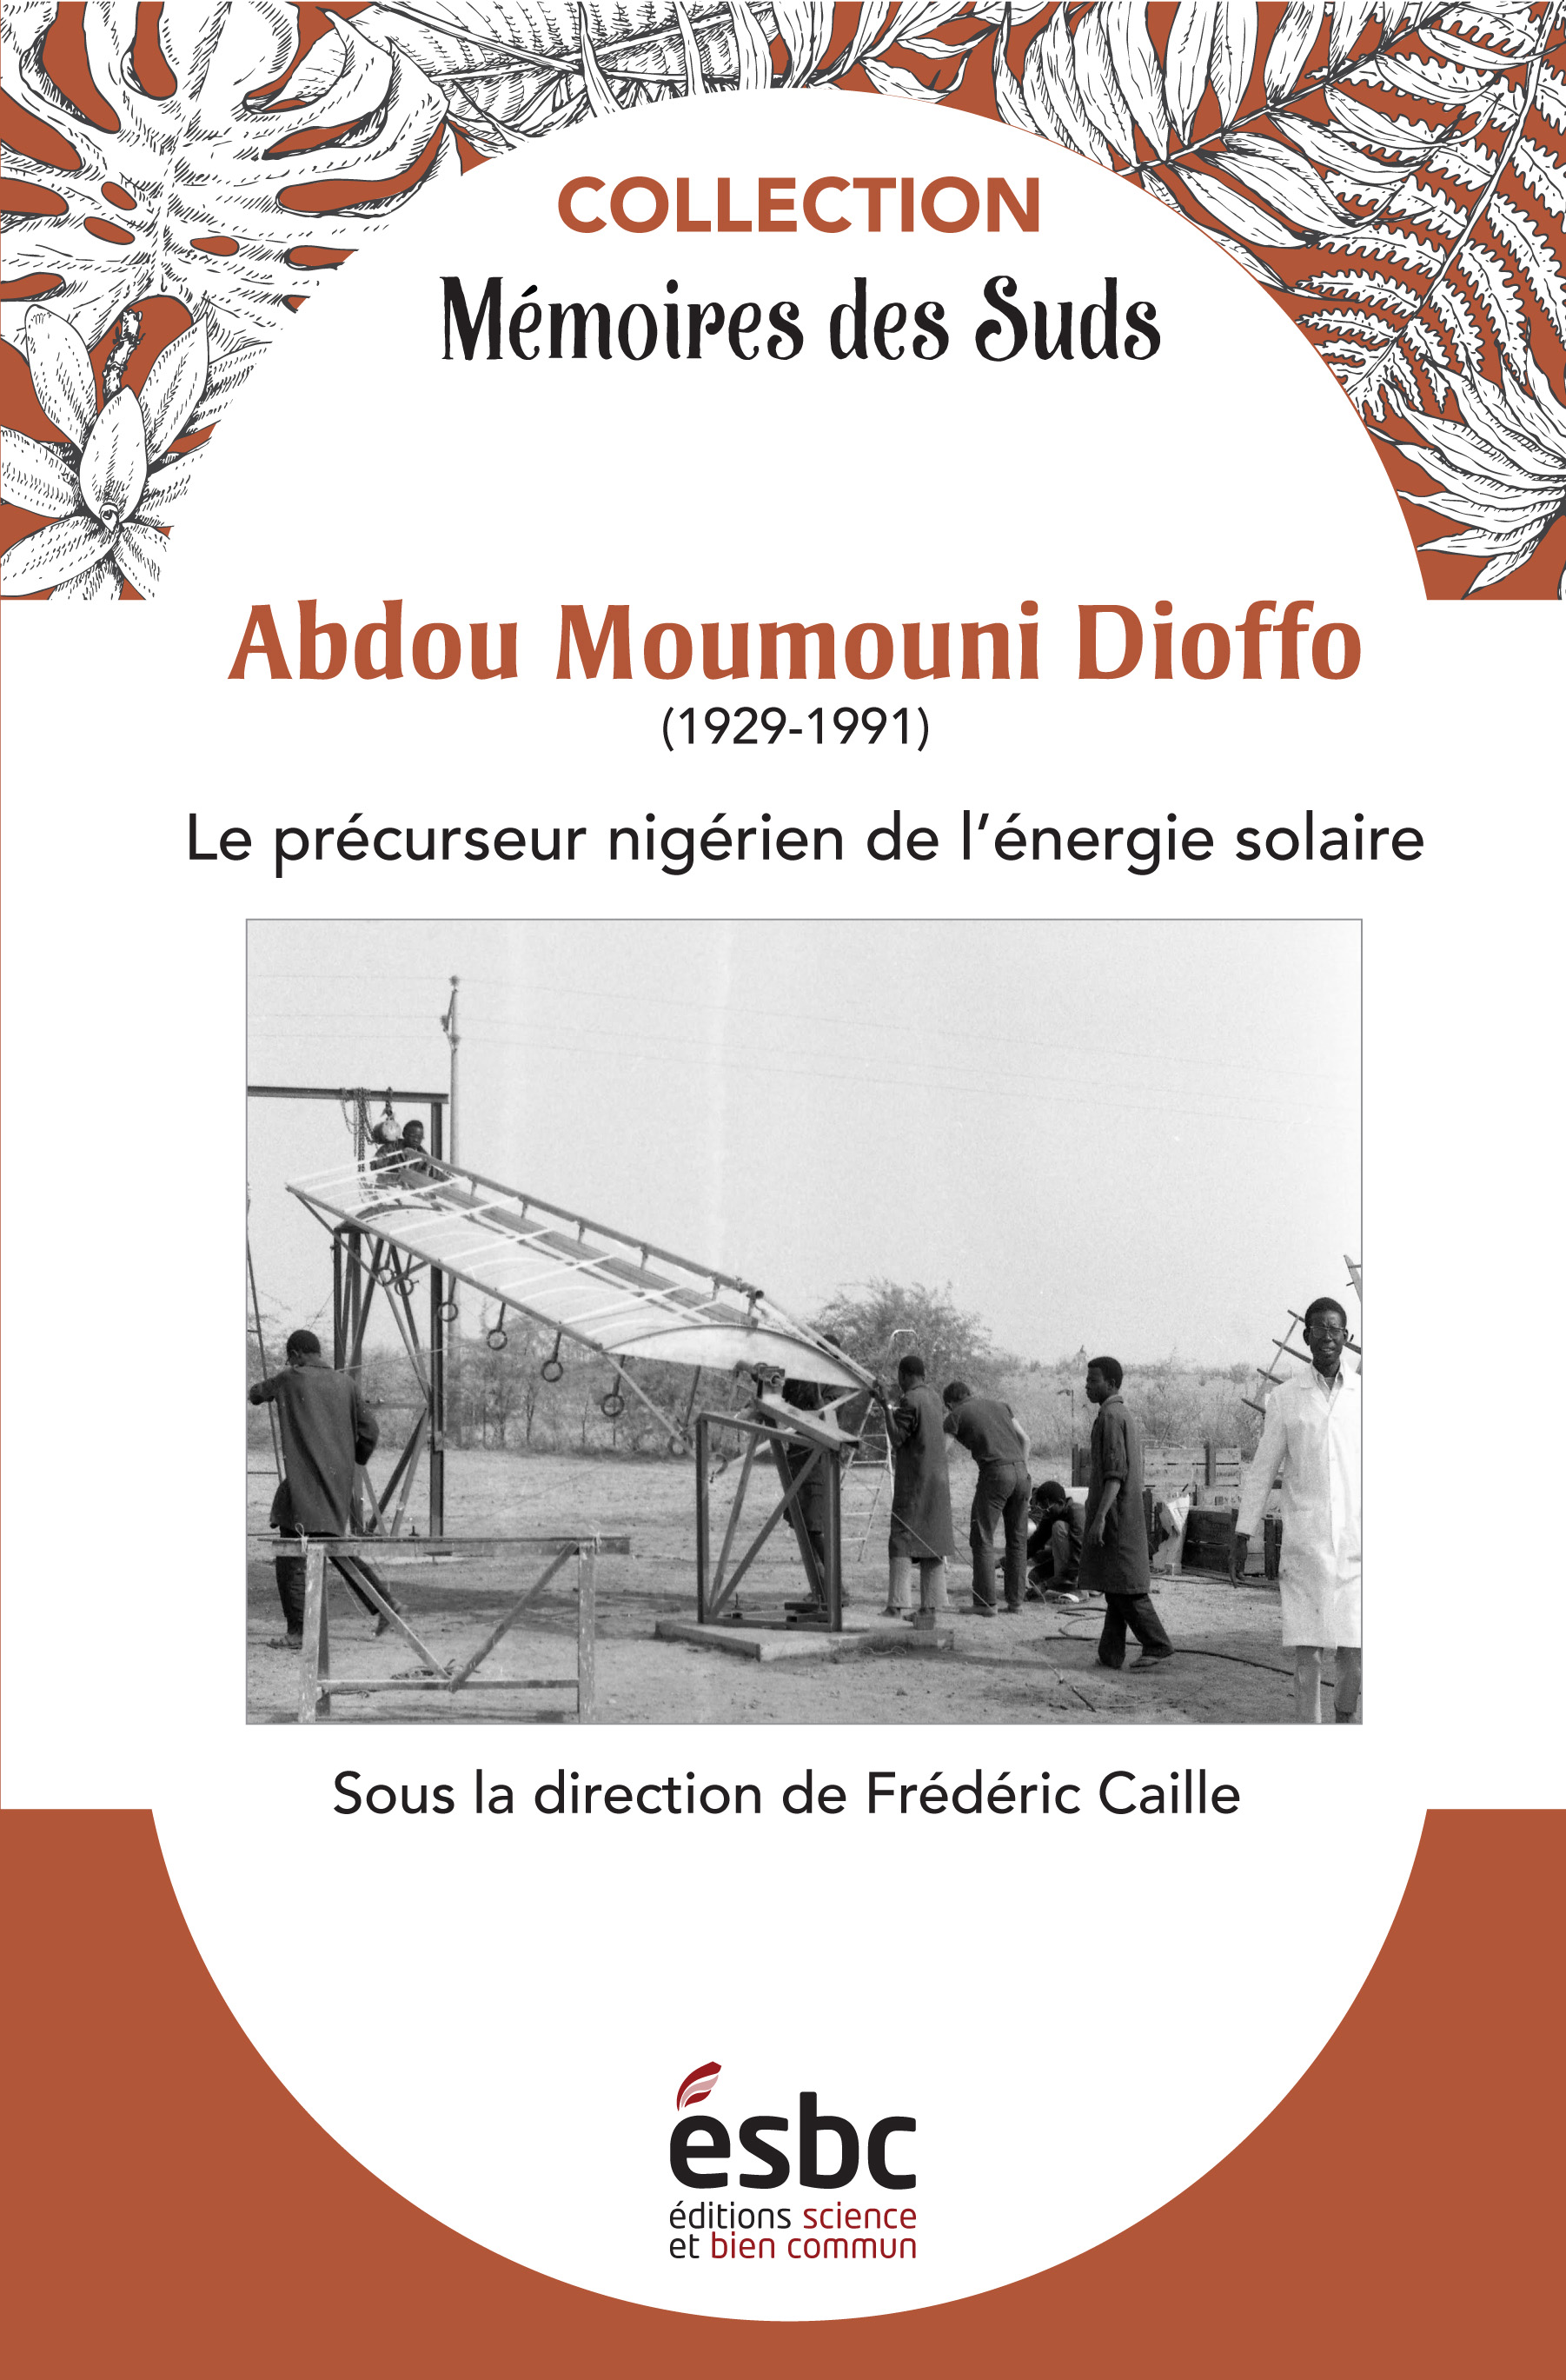 Cover image for Abdou Moumouni Dioffo (1929-1991)